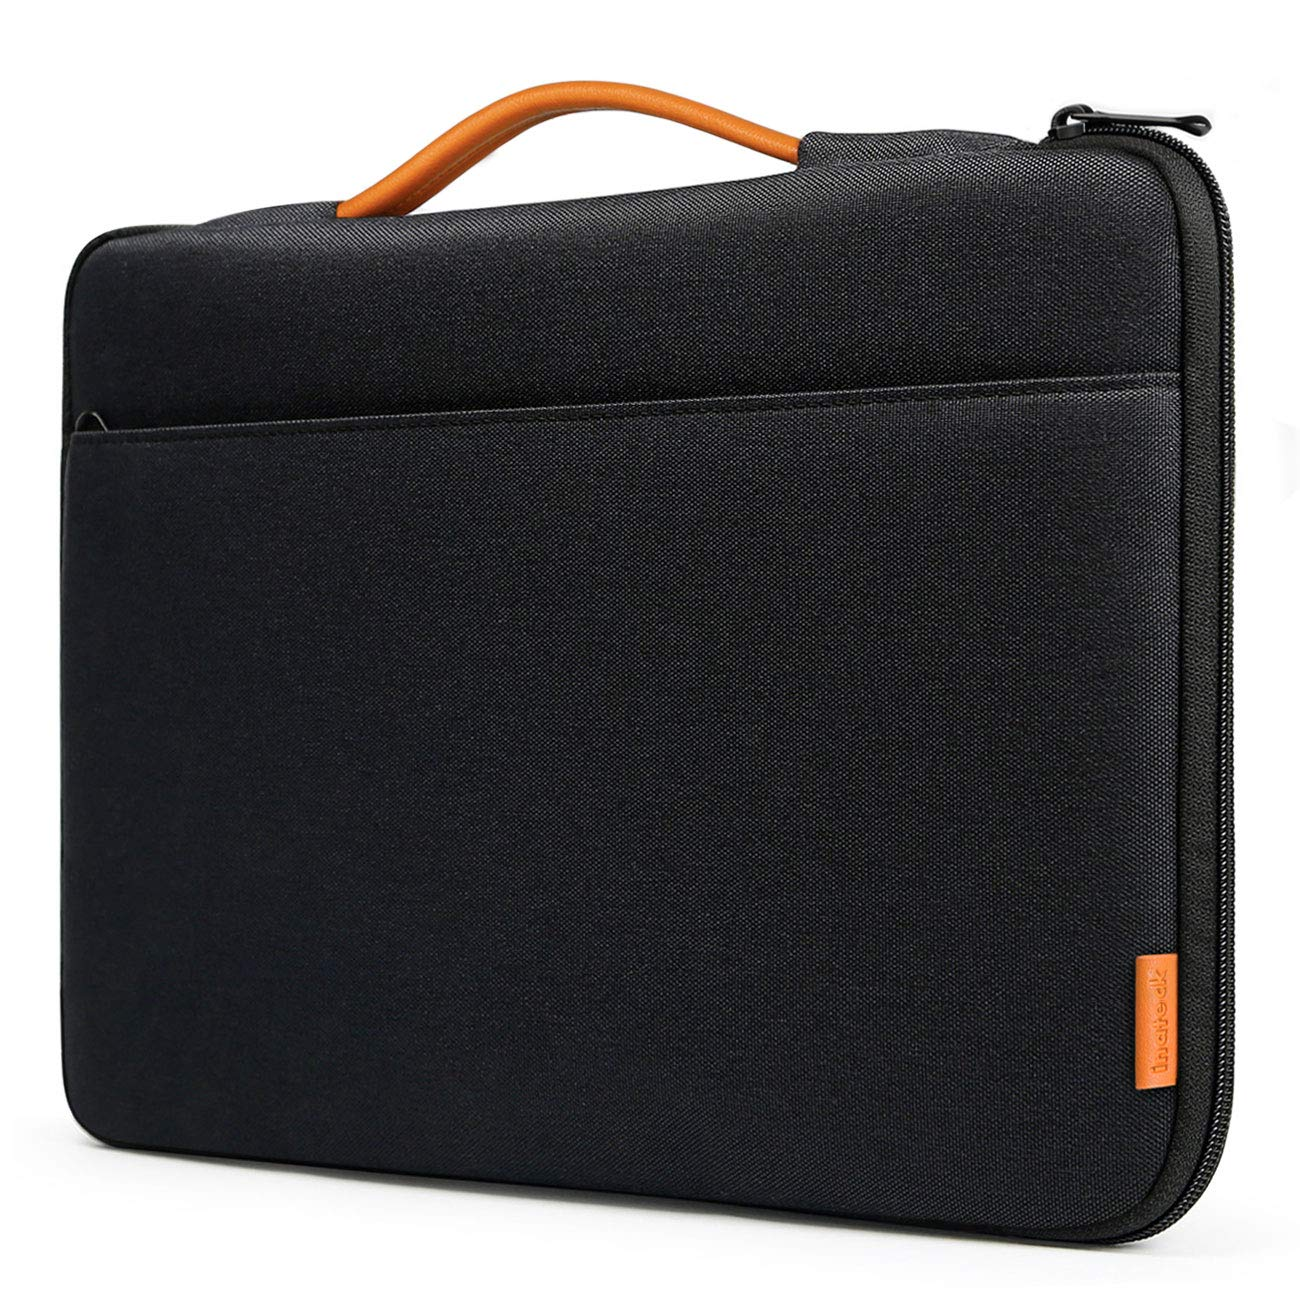 Inateck 13-13.3 Inch Laptop Case Bag Compatible 13.3 Inch MacBook Air(including 2018)/MacBook Pro Retina 13'' 2012-2015,2018/2017/2016,Surface Pro 3/4/5/6, Surface Laptop 2017/Surface Laptop 2 - Black